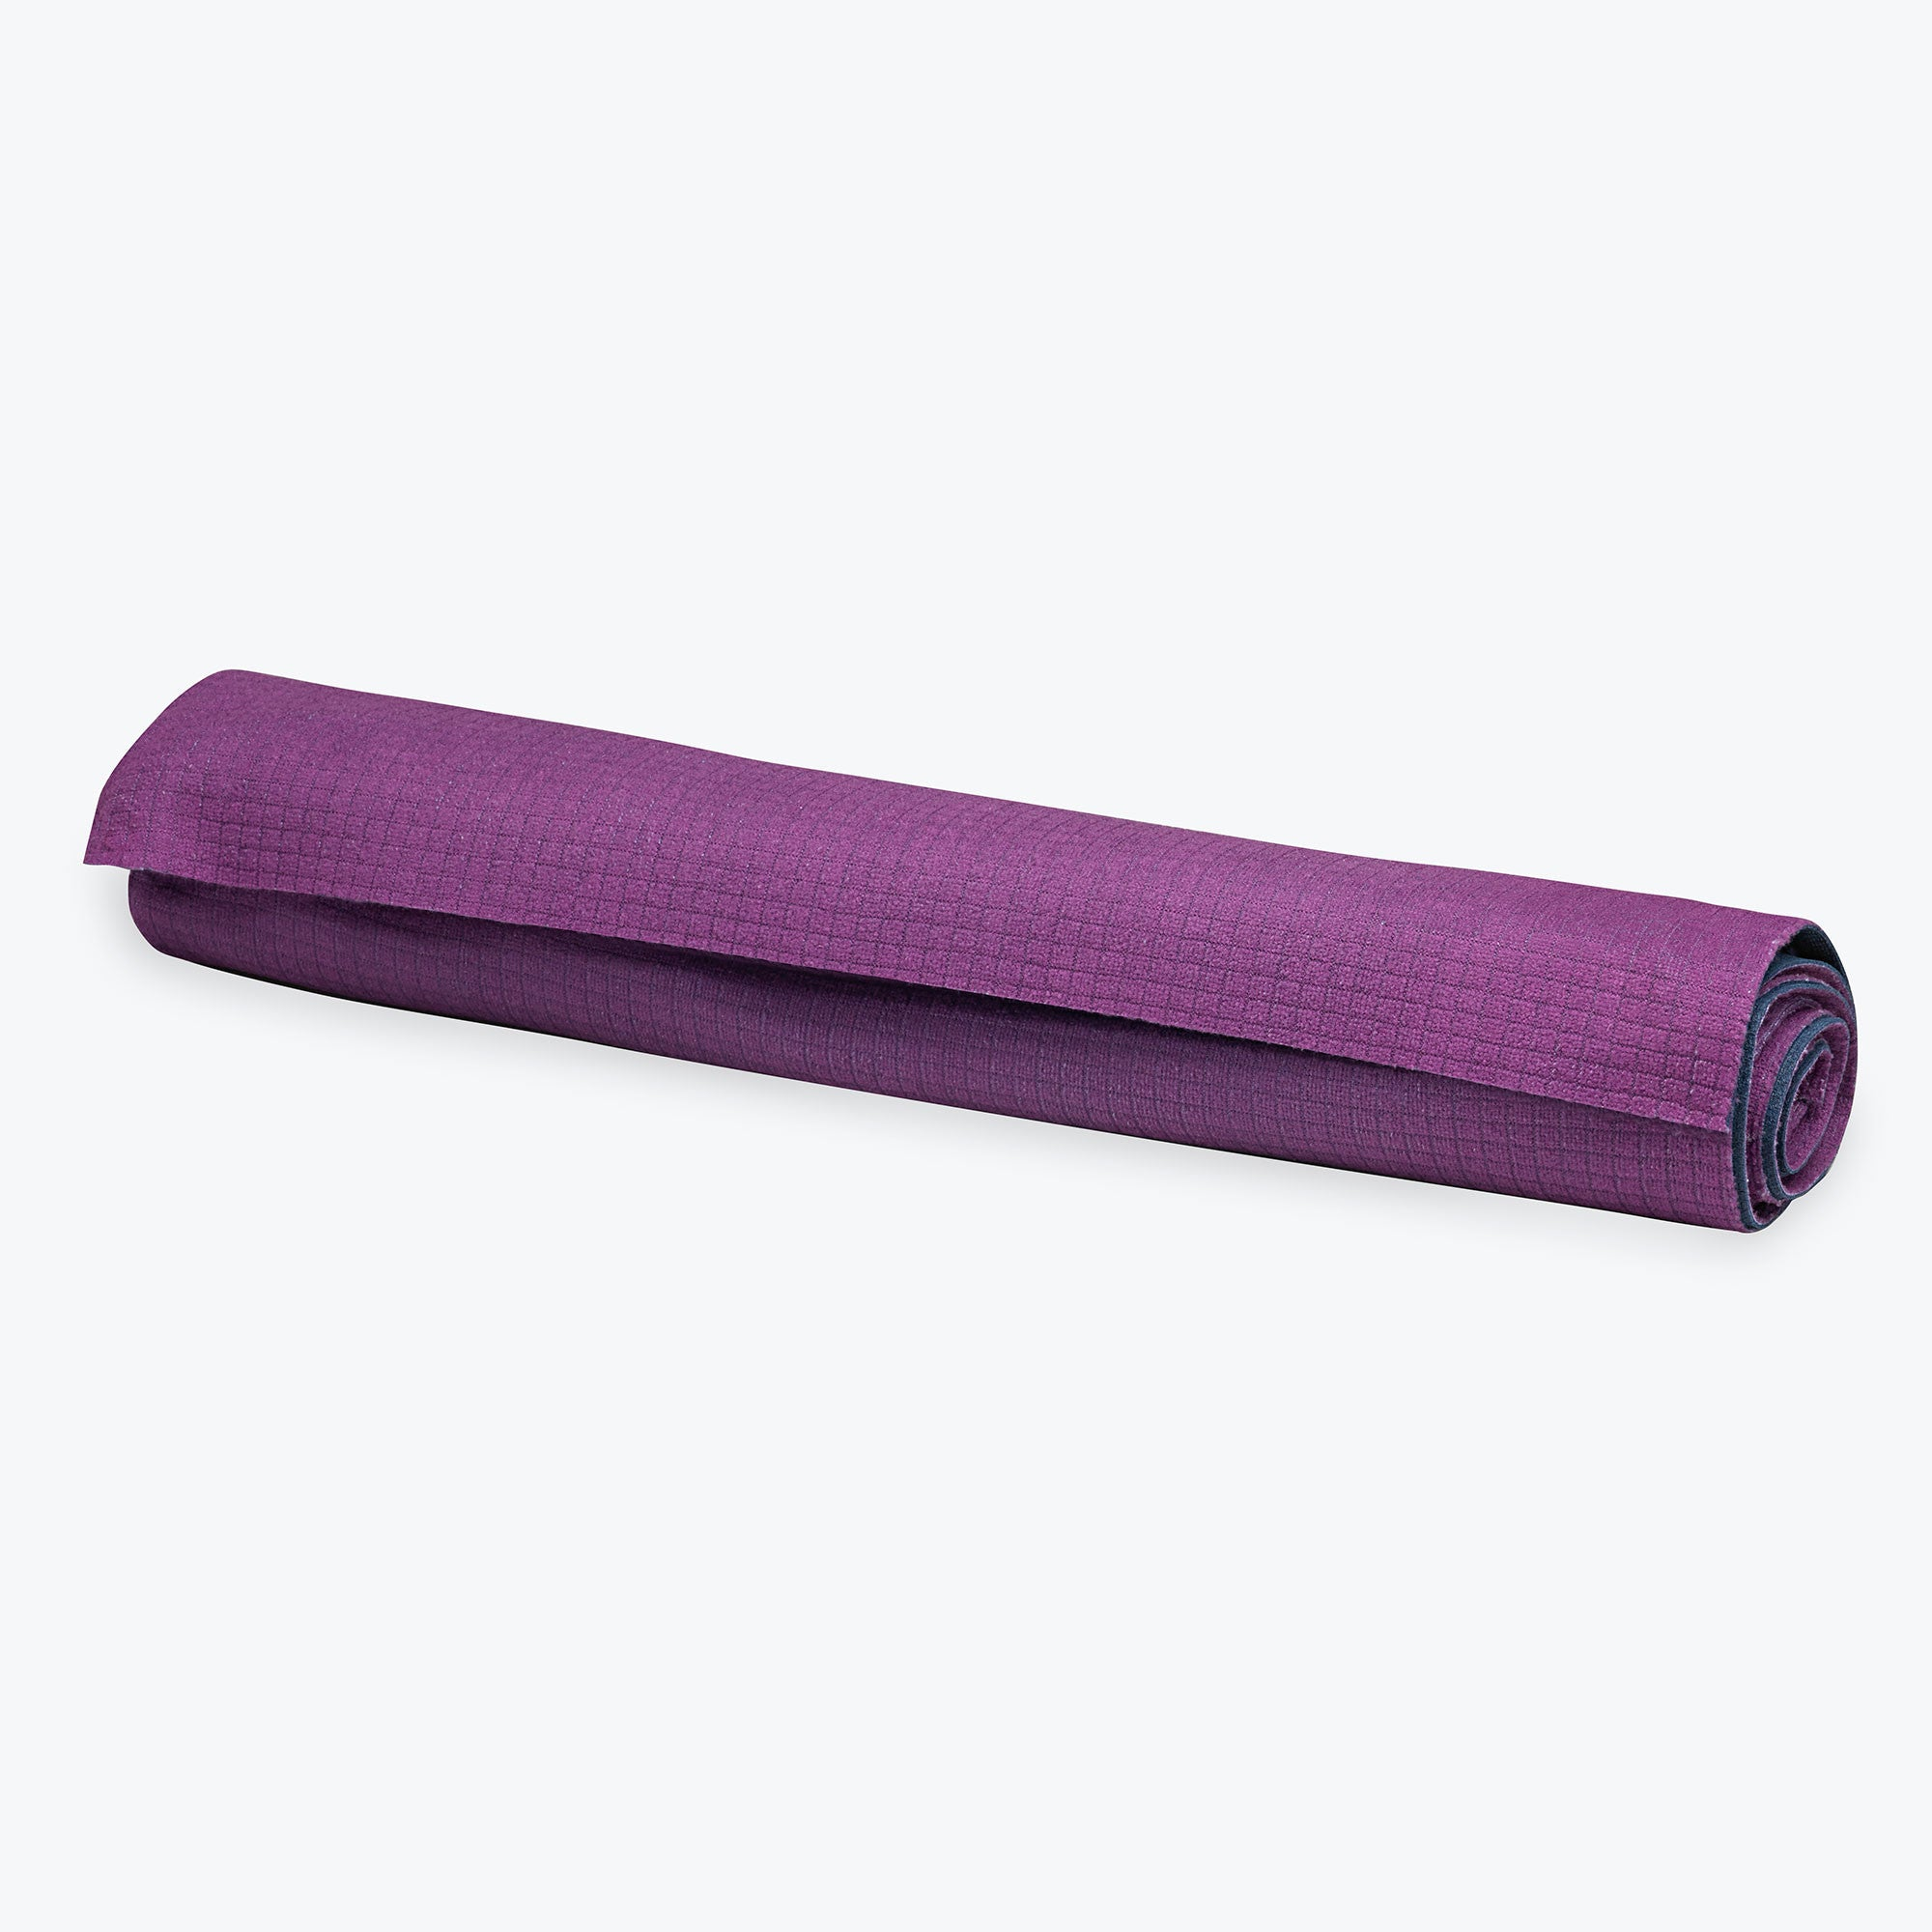 product tpe rubber eyleqnklhgwp china friendly textured non foam yoga slip material mats eco mat